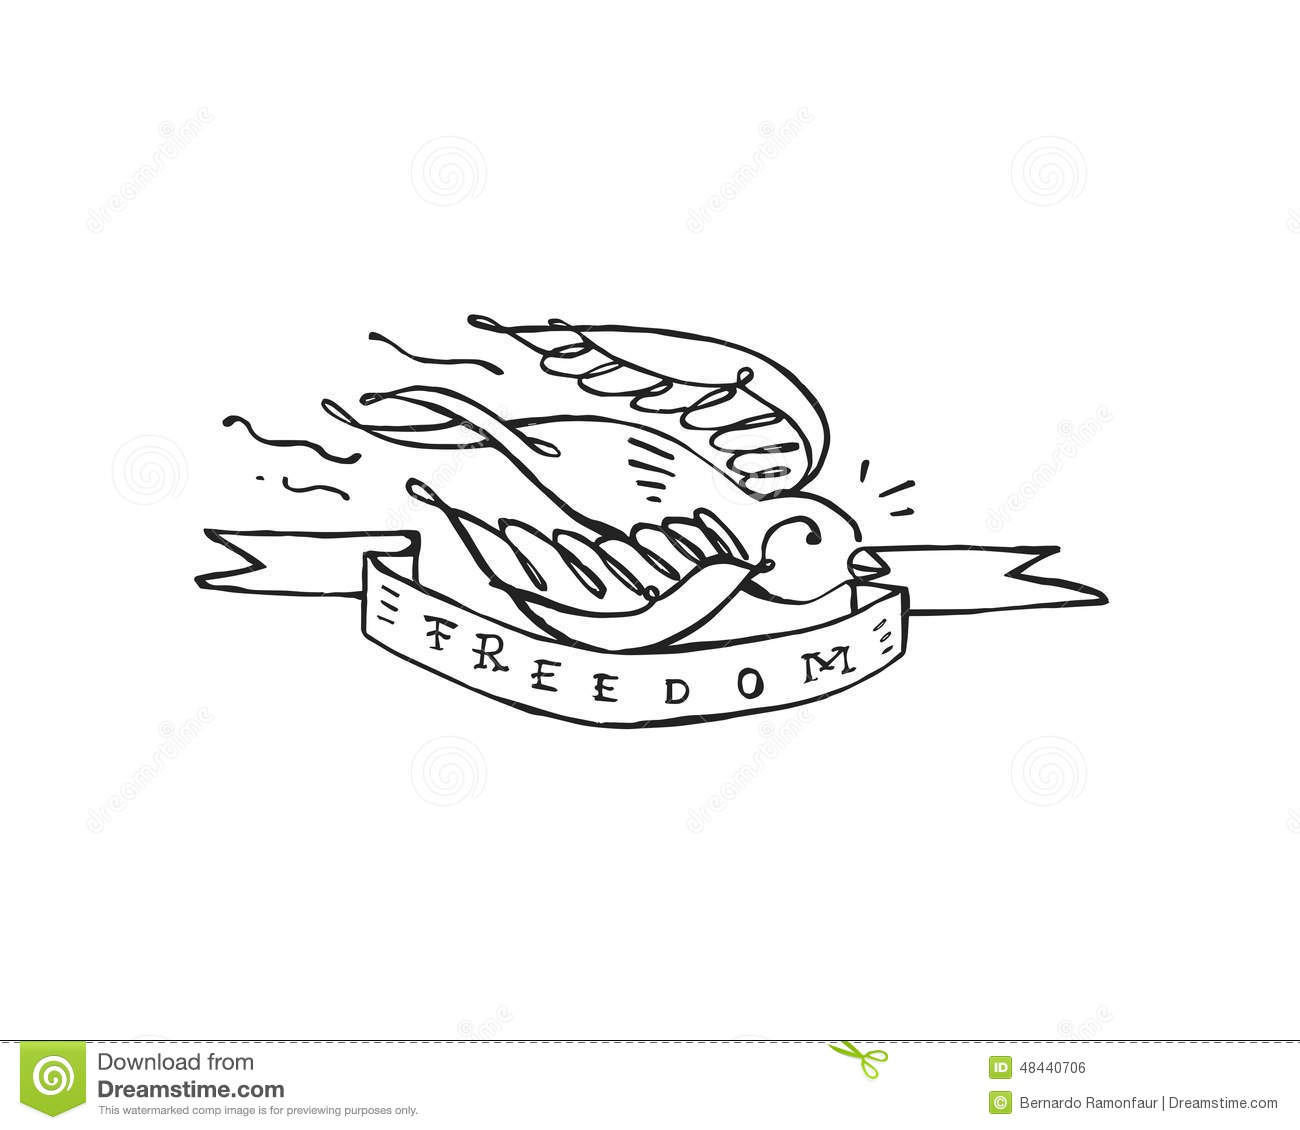 Freedom stock vector. Image of says, hand, freedom, wings ...